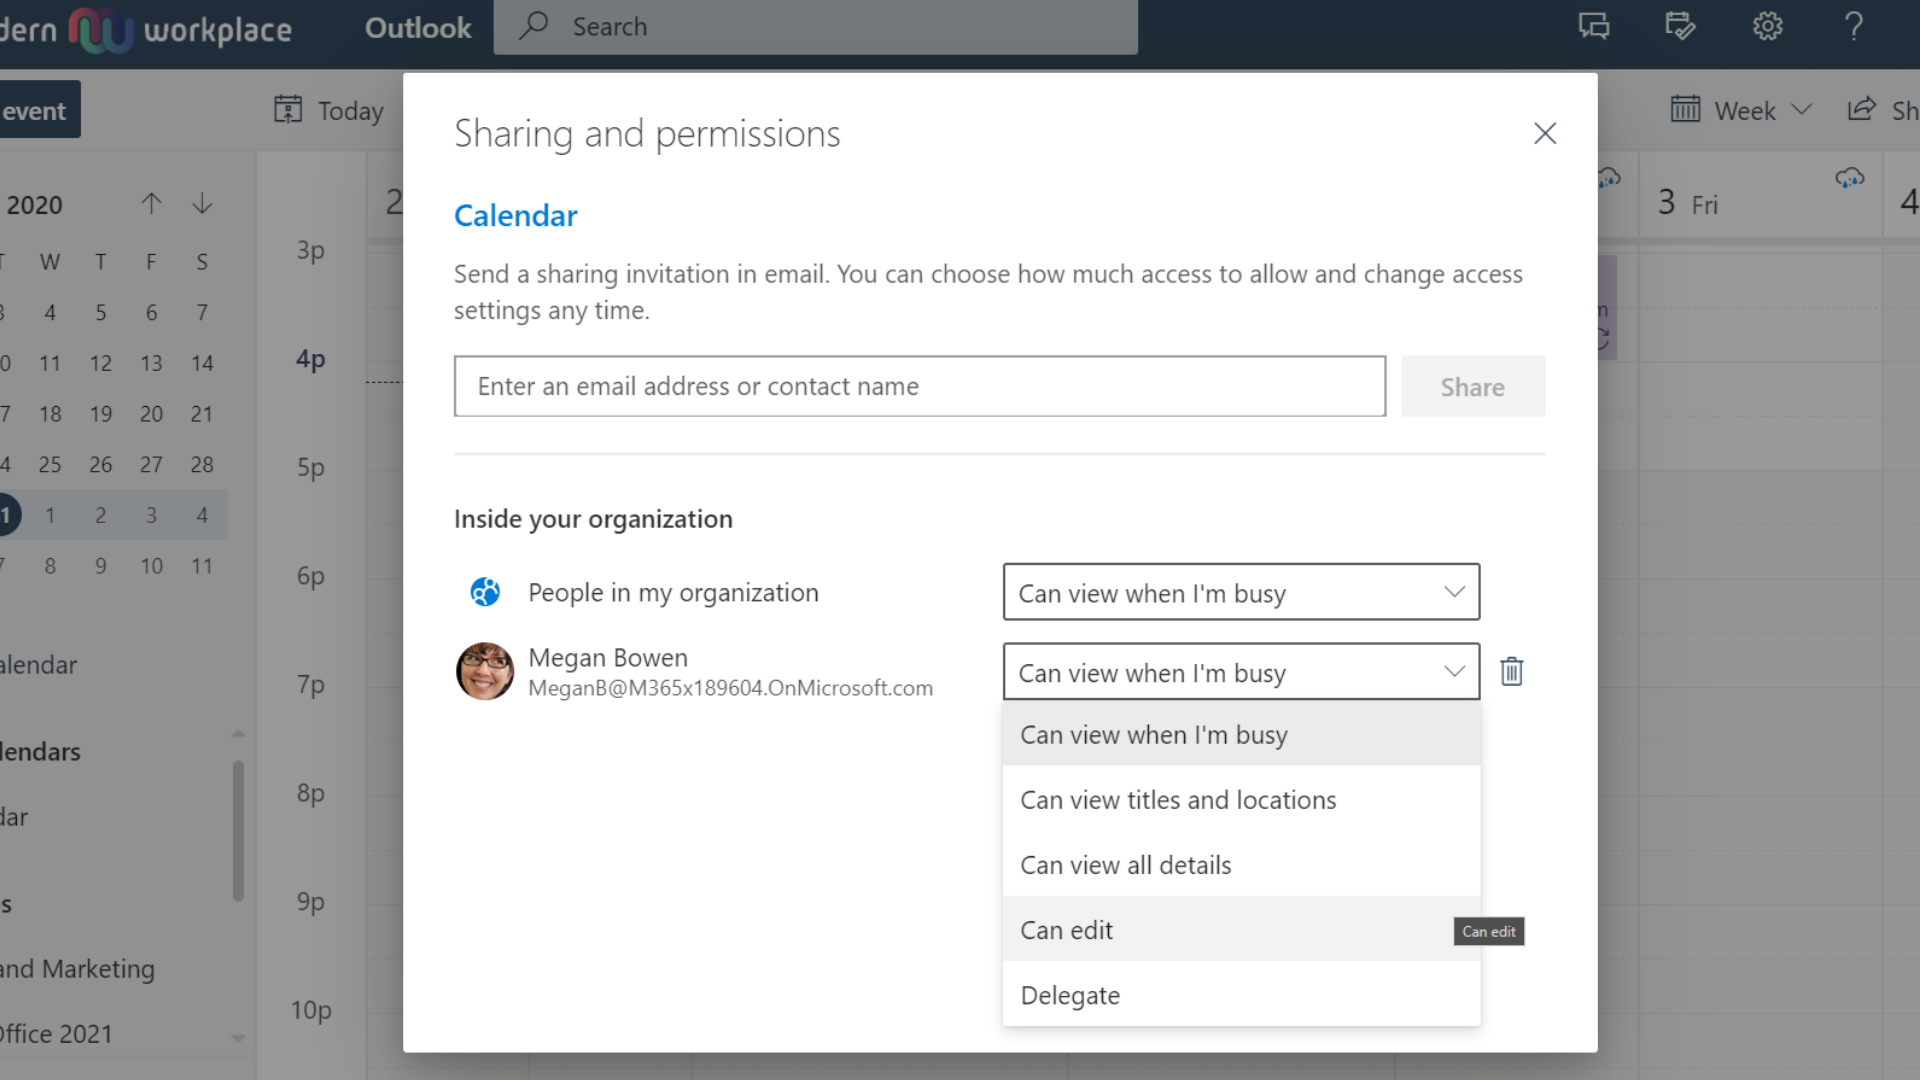 Outlook Calendar Sharing permissions